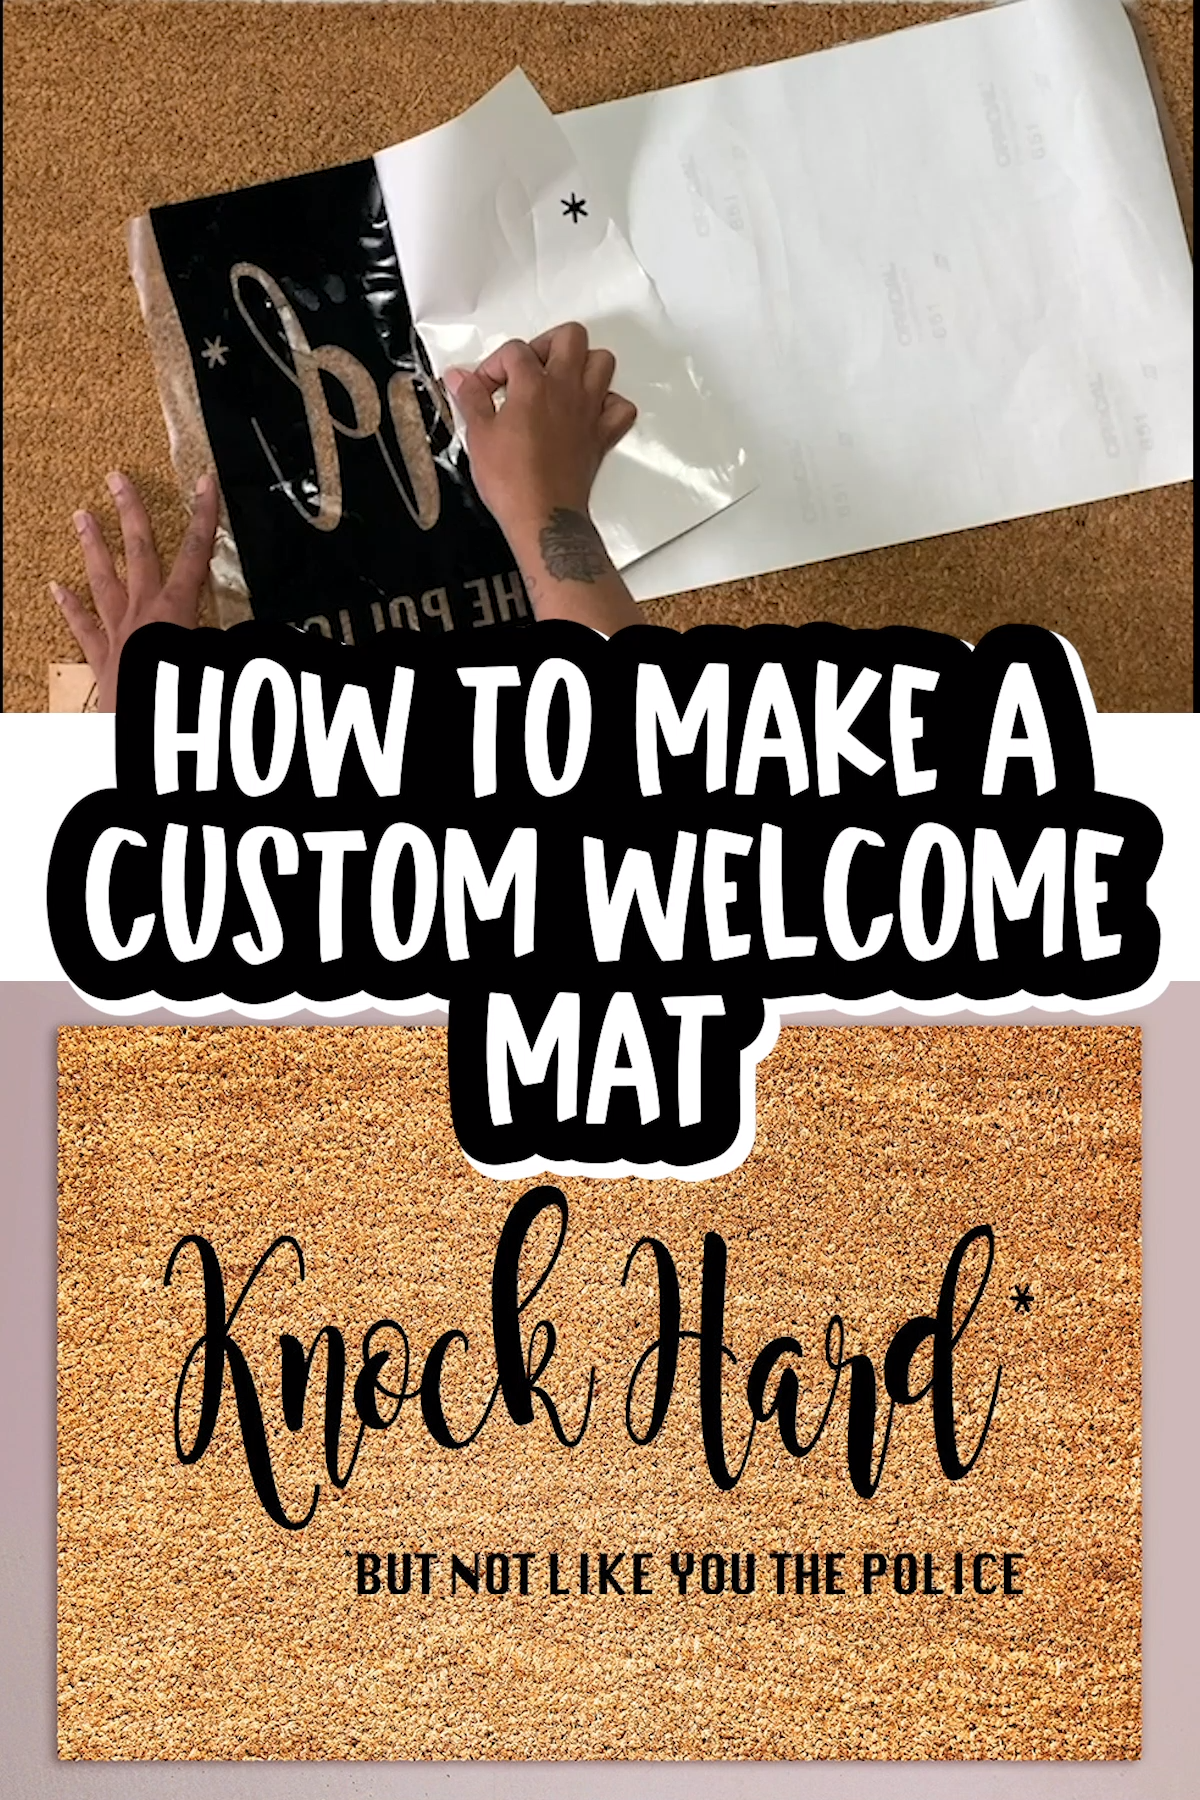 I was looking for the perfect outdoor mat to match my smart-mouthed personality. Then I remembered I can make Cricut stencils. #frontporches #doormats #diy #large #patio #cricut #diy